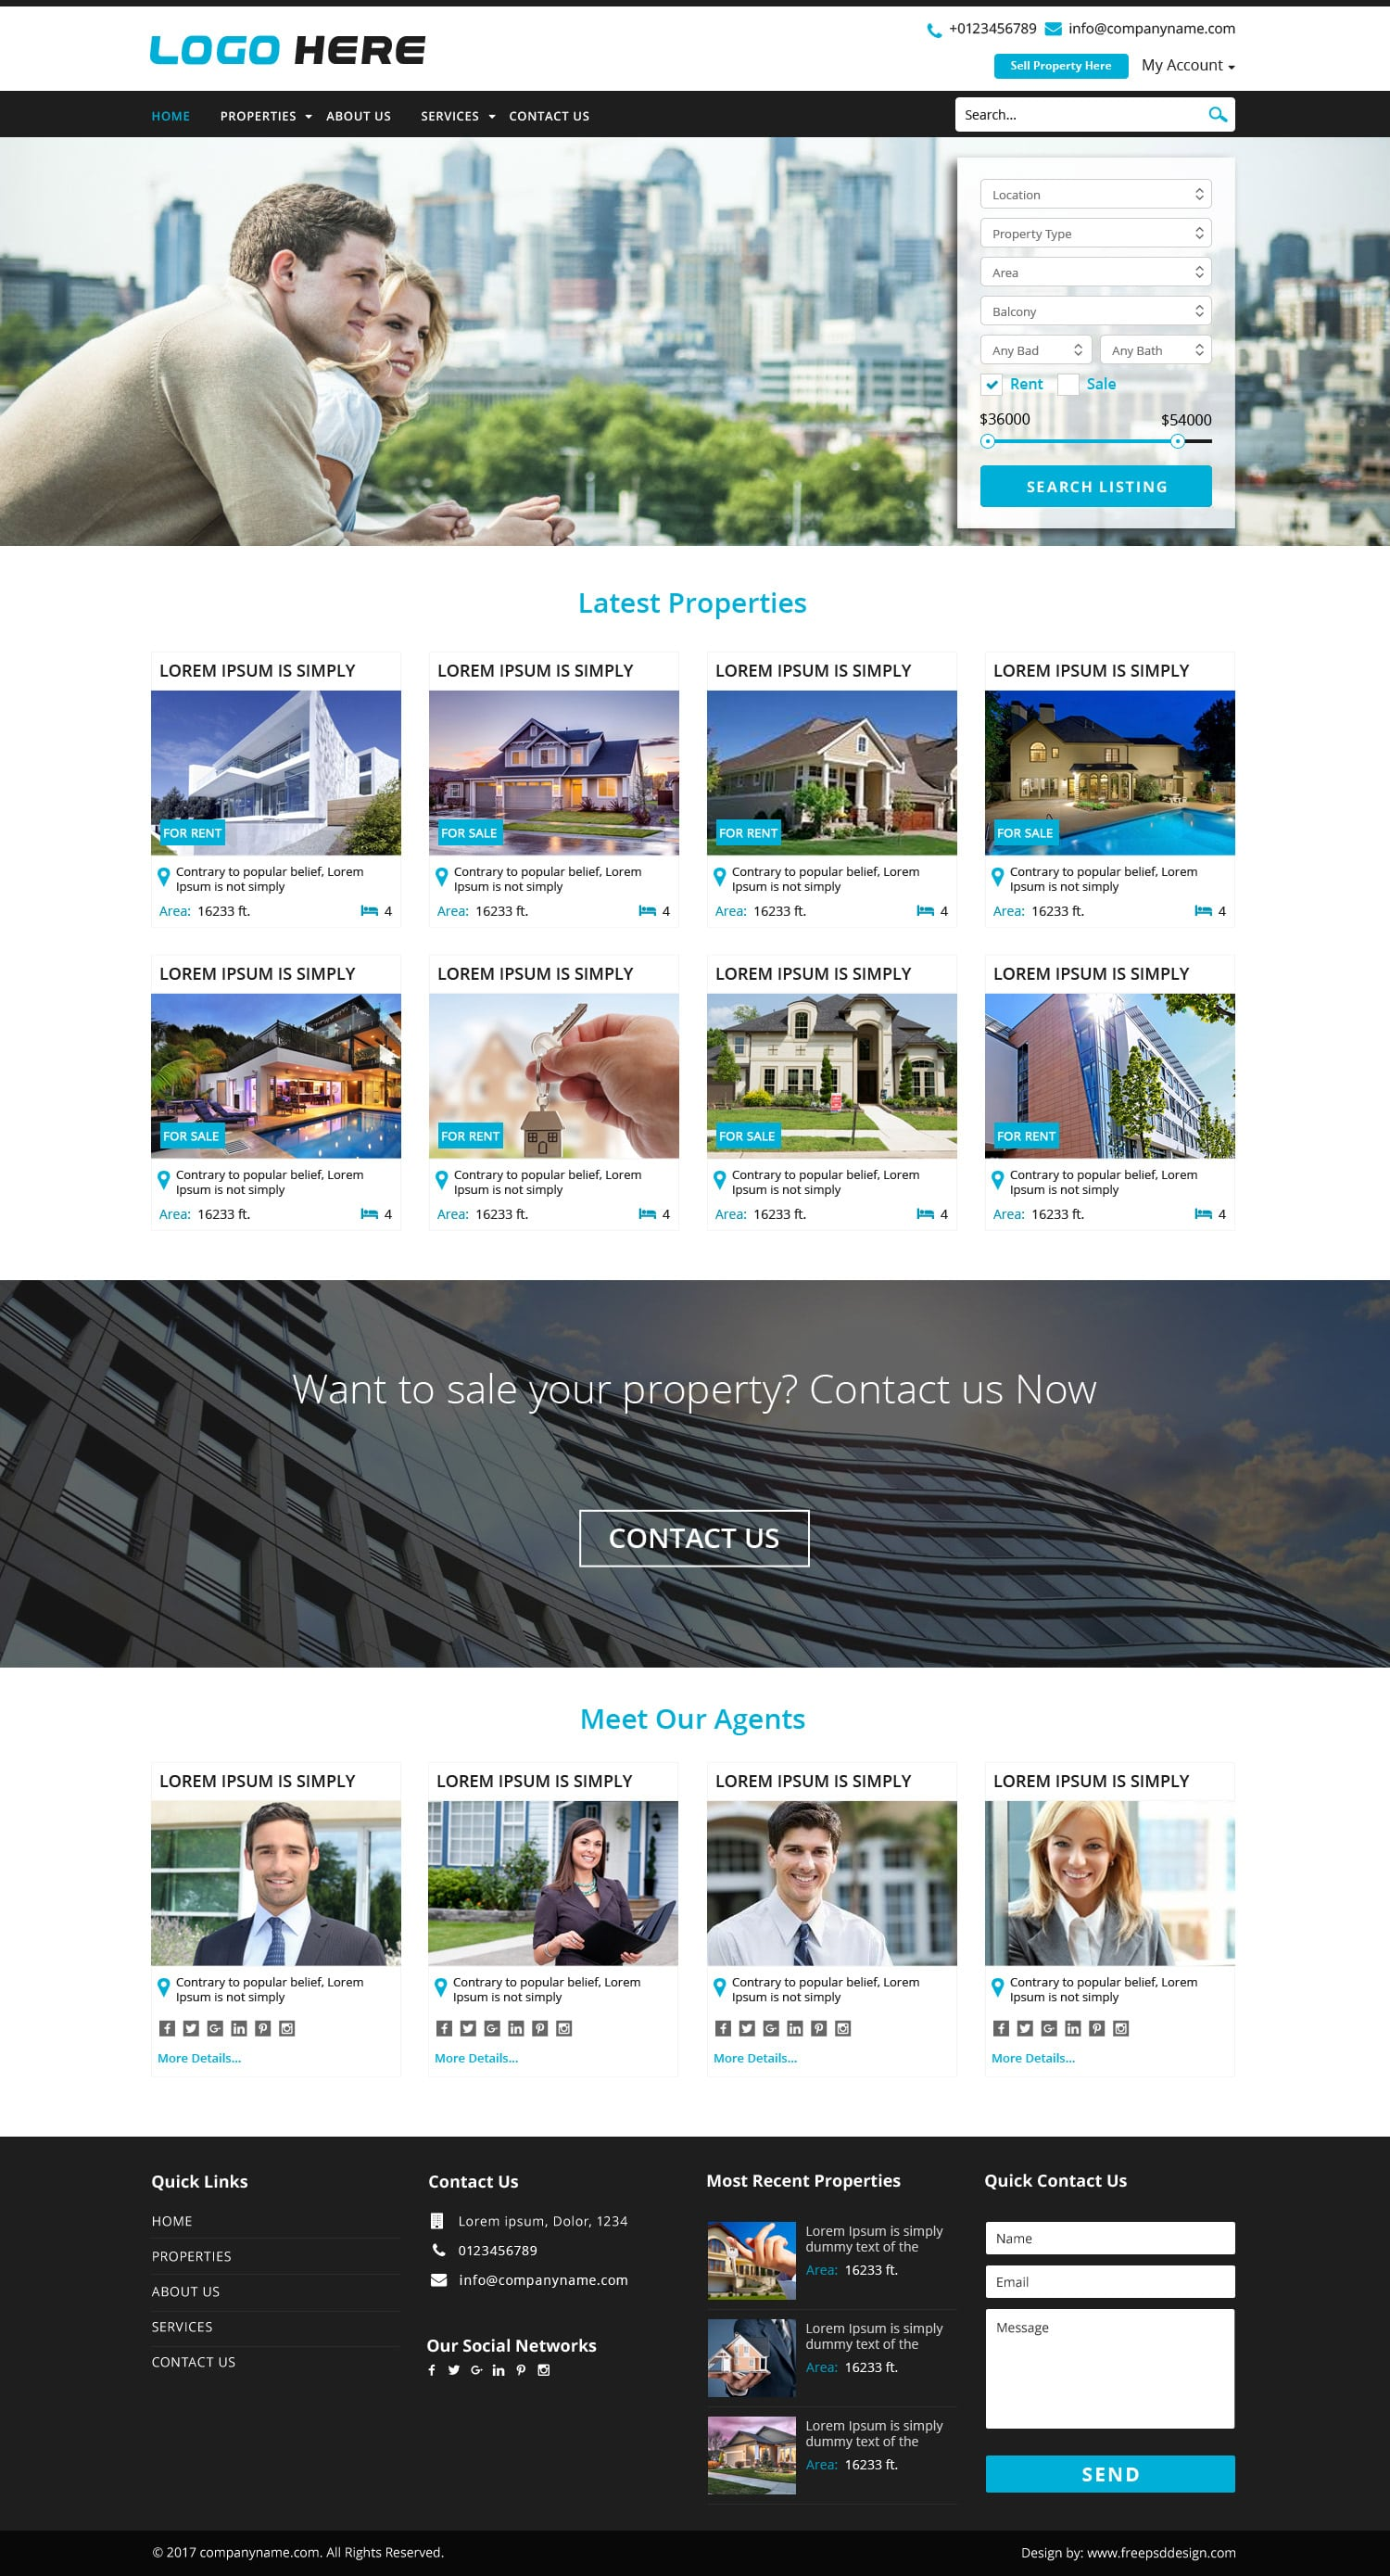 Online Real Estate Website